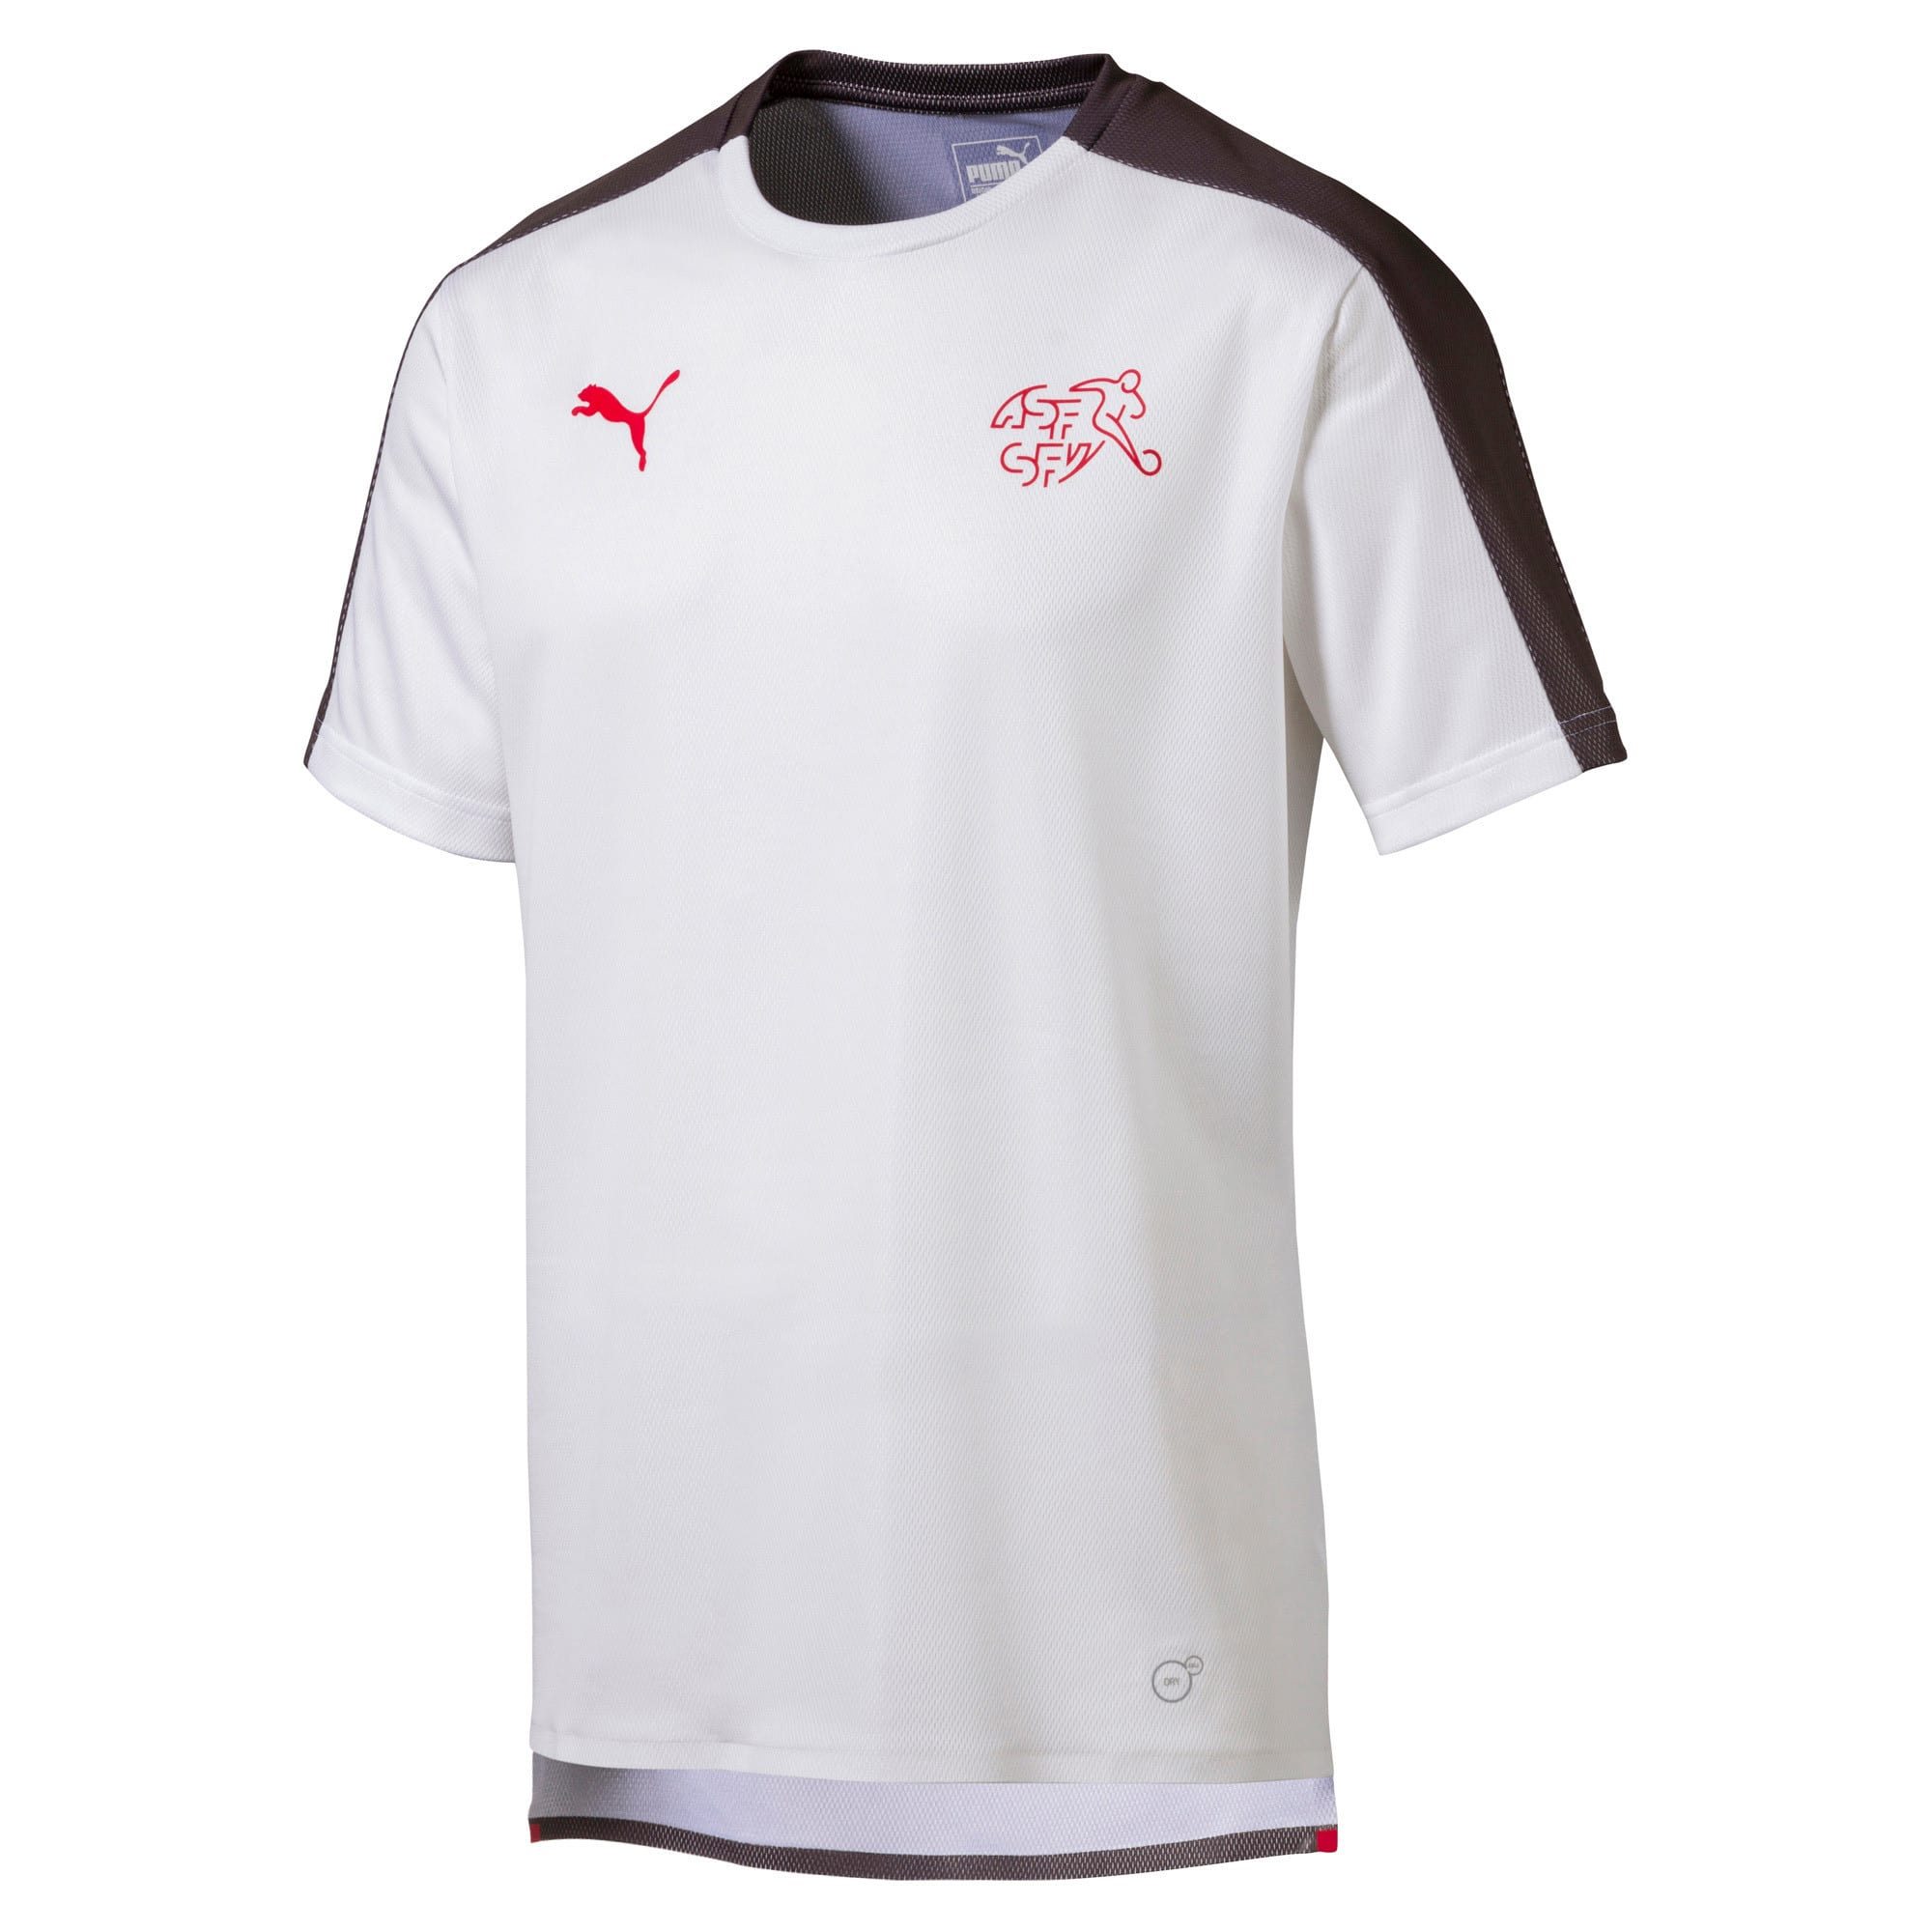 Thumbnail 1 of SUISSE Stadium Jersey, Puma White-Asphalt, medium